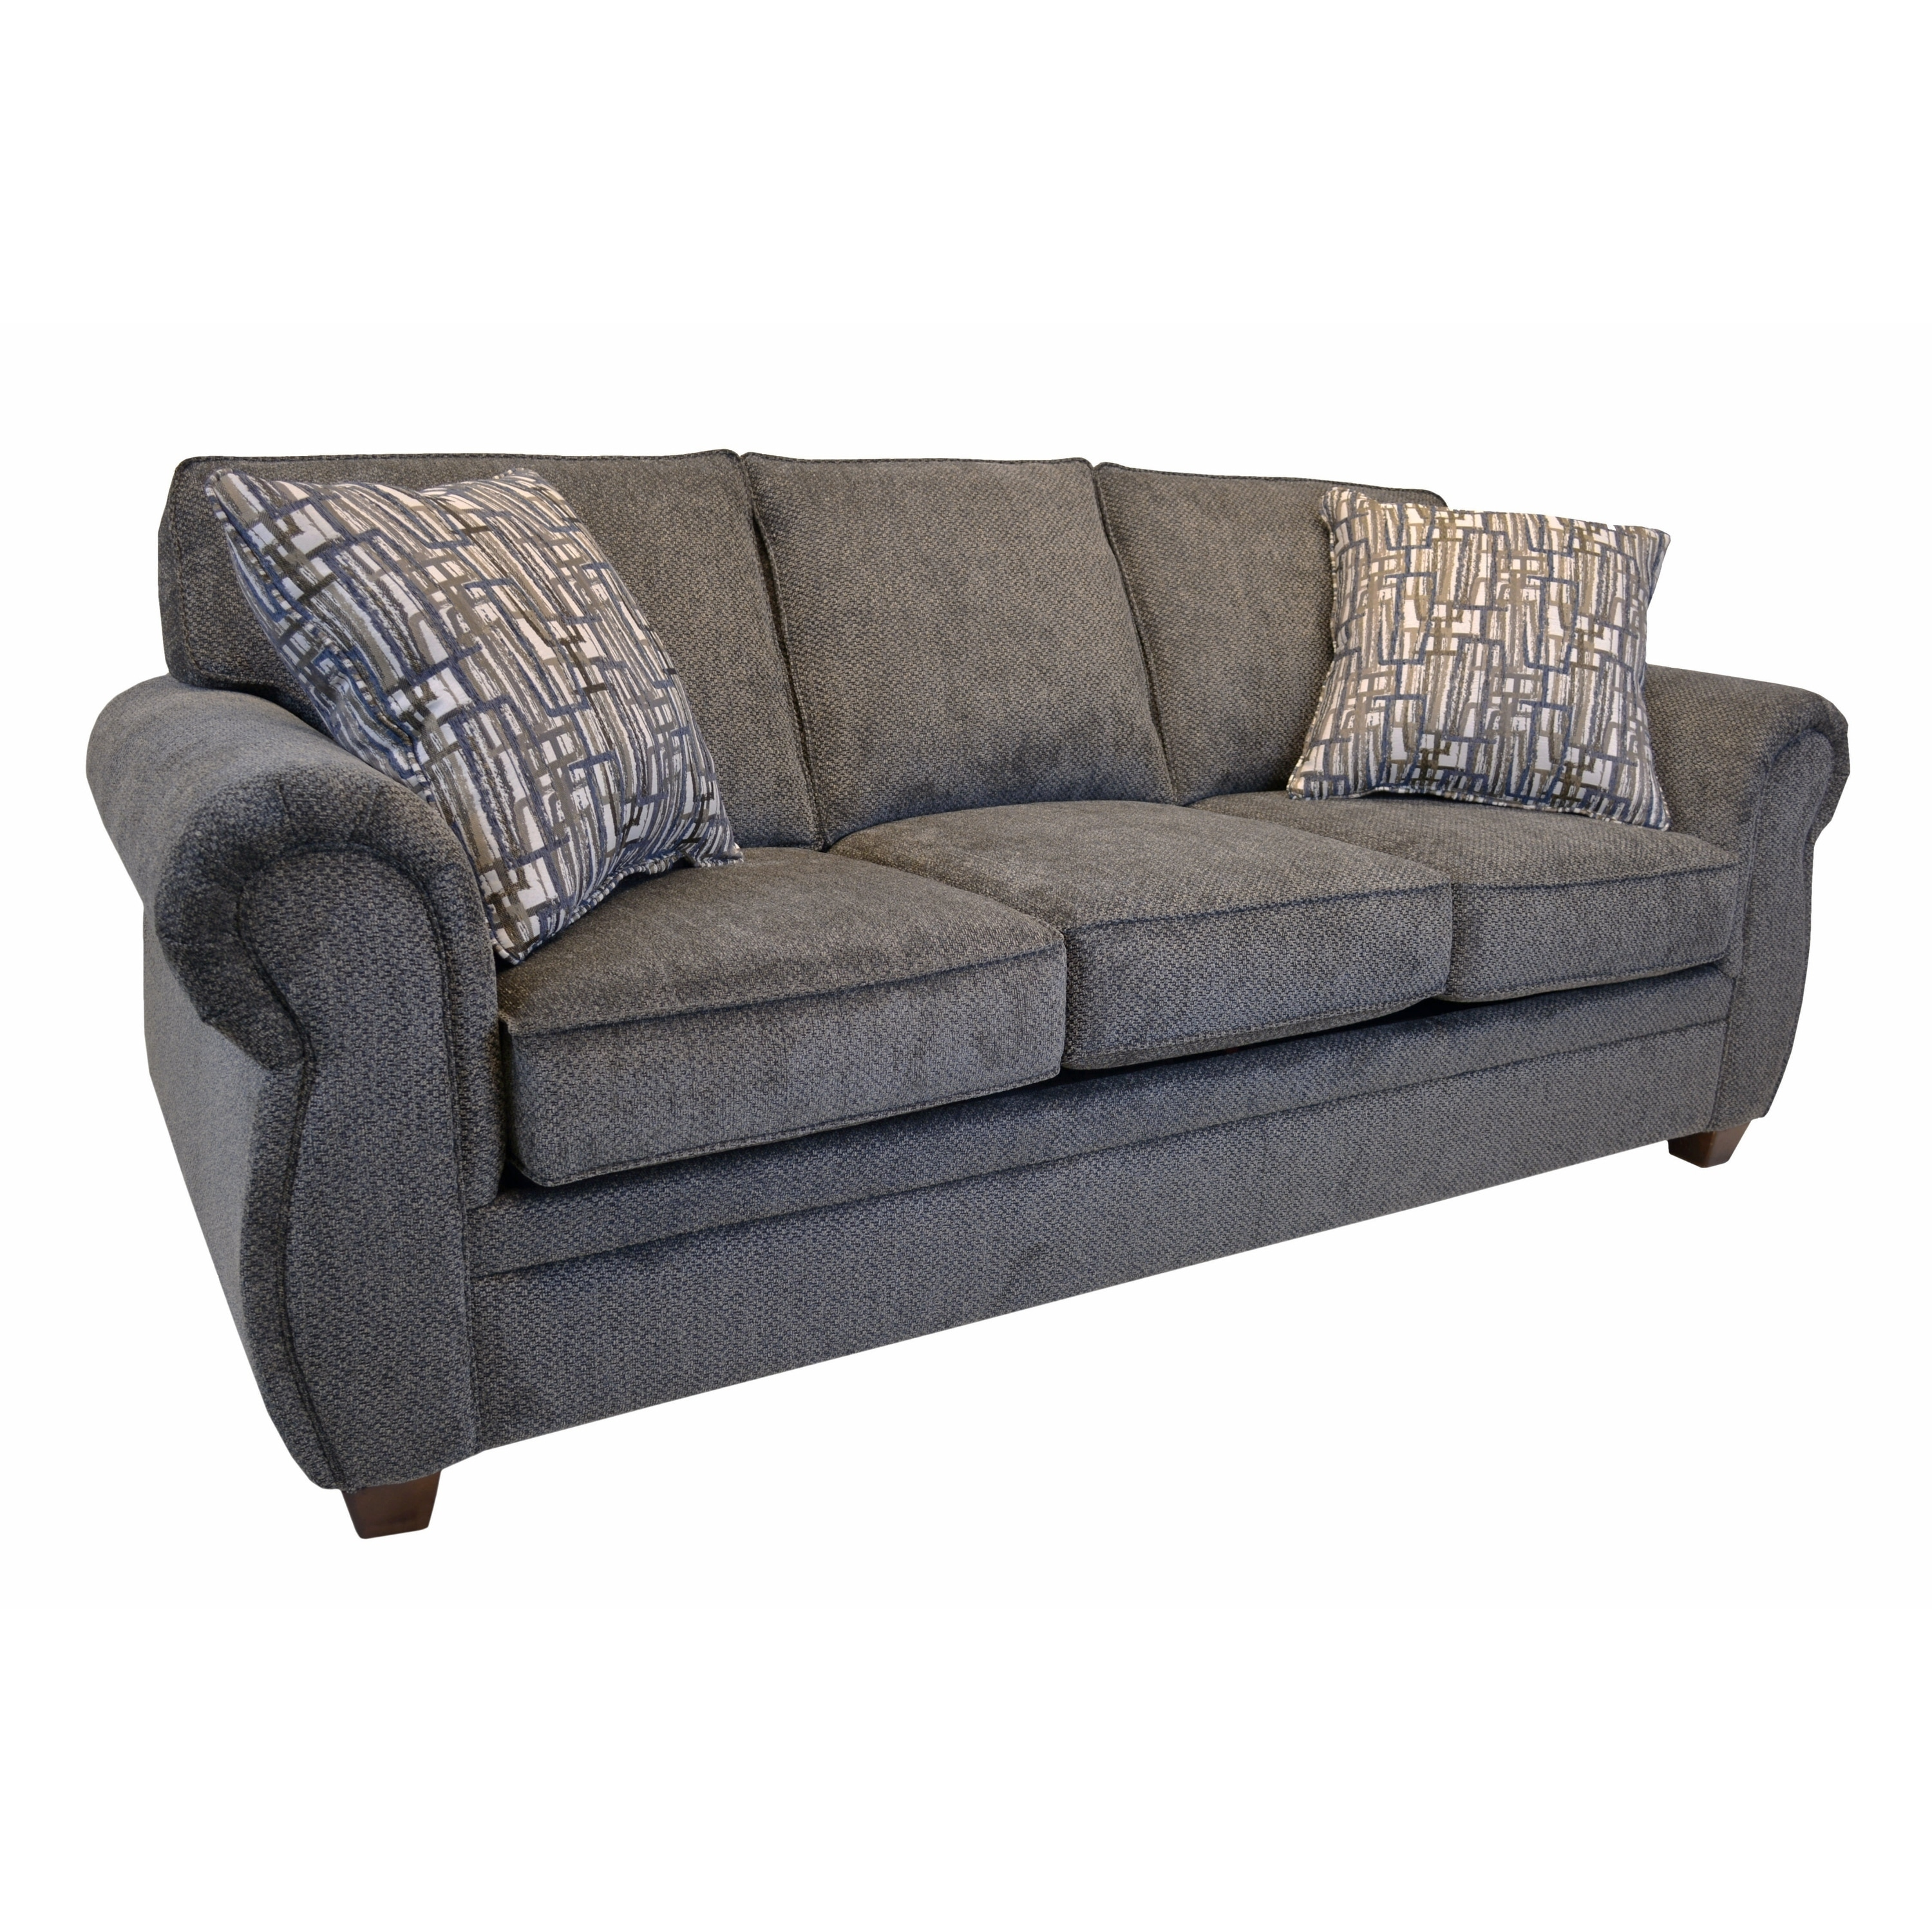 sofa bed with innerspring mattress chaise lounge and recliner shop whitney sleeper queen free shipping today overstock com 21869393